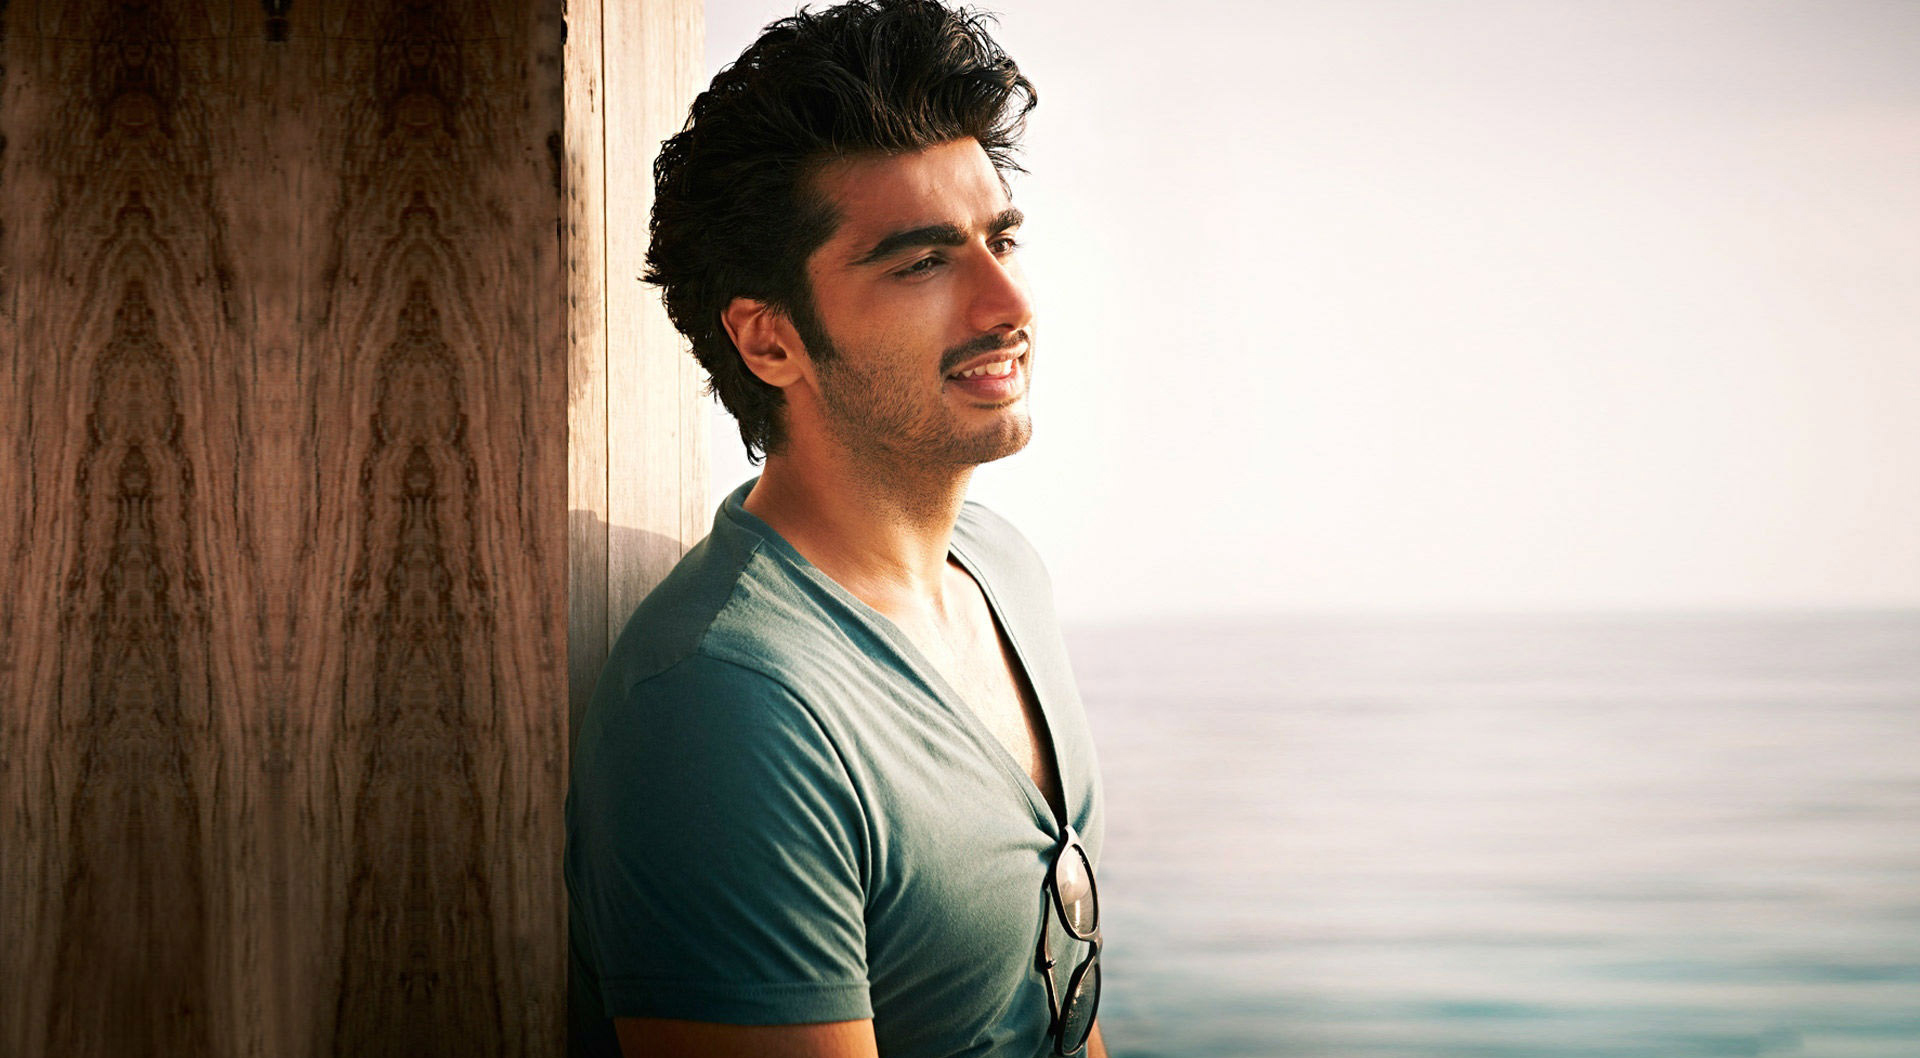 2560x1600 Arjun Kapoor latest wallpapers 2560x1600 Resolution 1920x1058